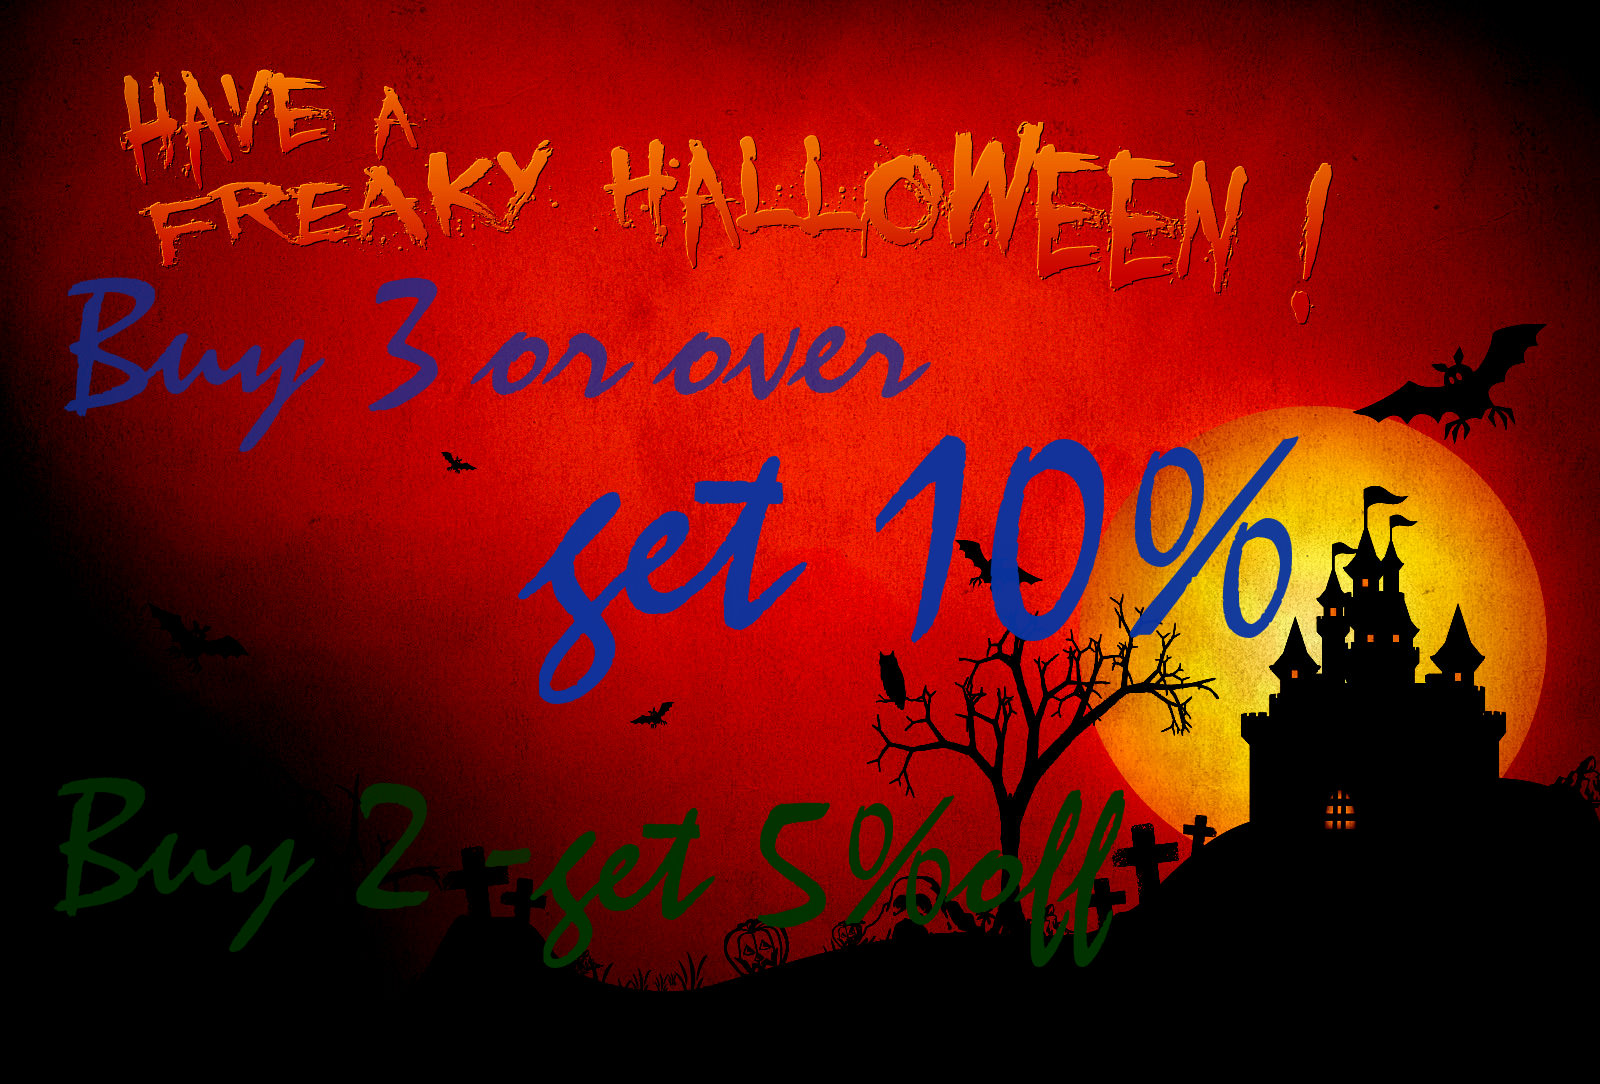 Get 10%off everything and Happy Halloween! Halloween-airsoft-tiger111hk3-10